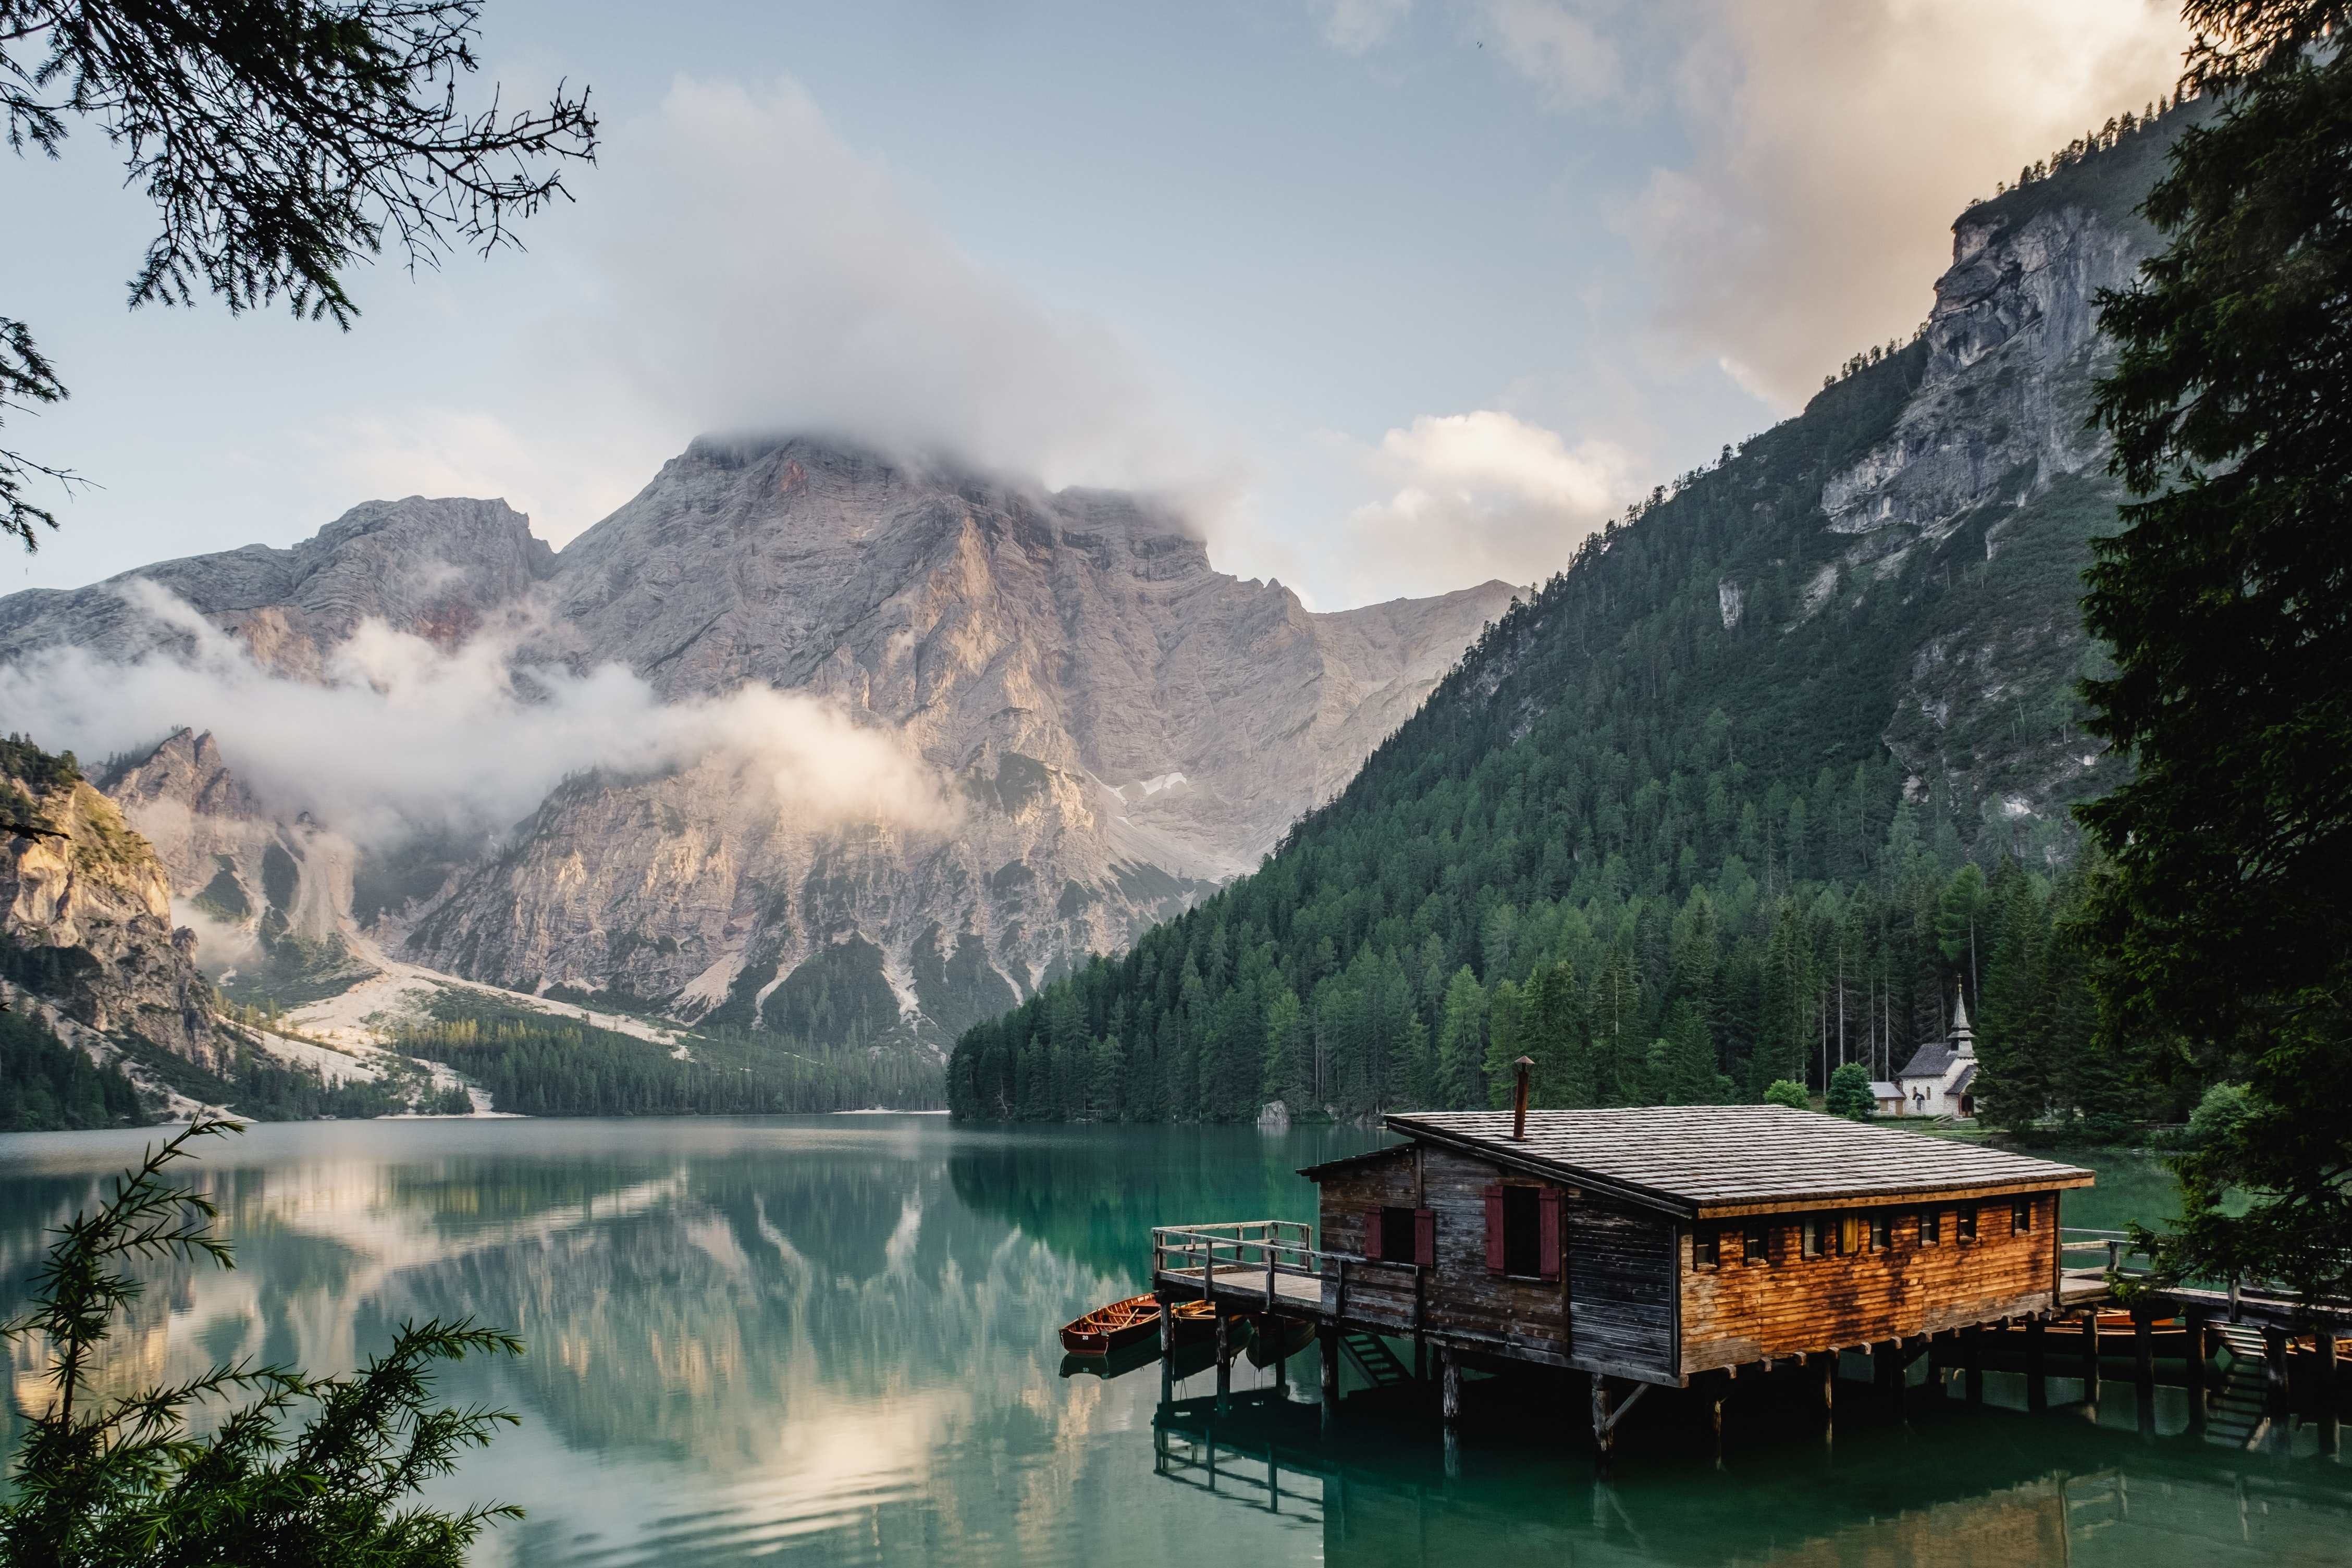 A log cabin lakehouse and dock on Lago di Braies with the snow-capped mountains in the background